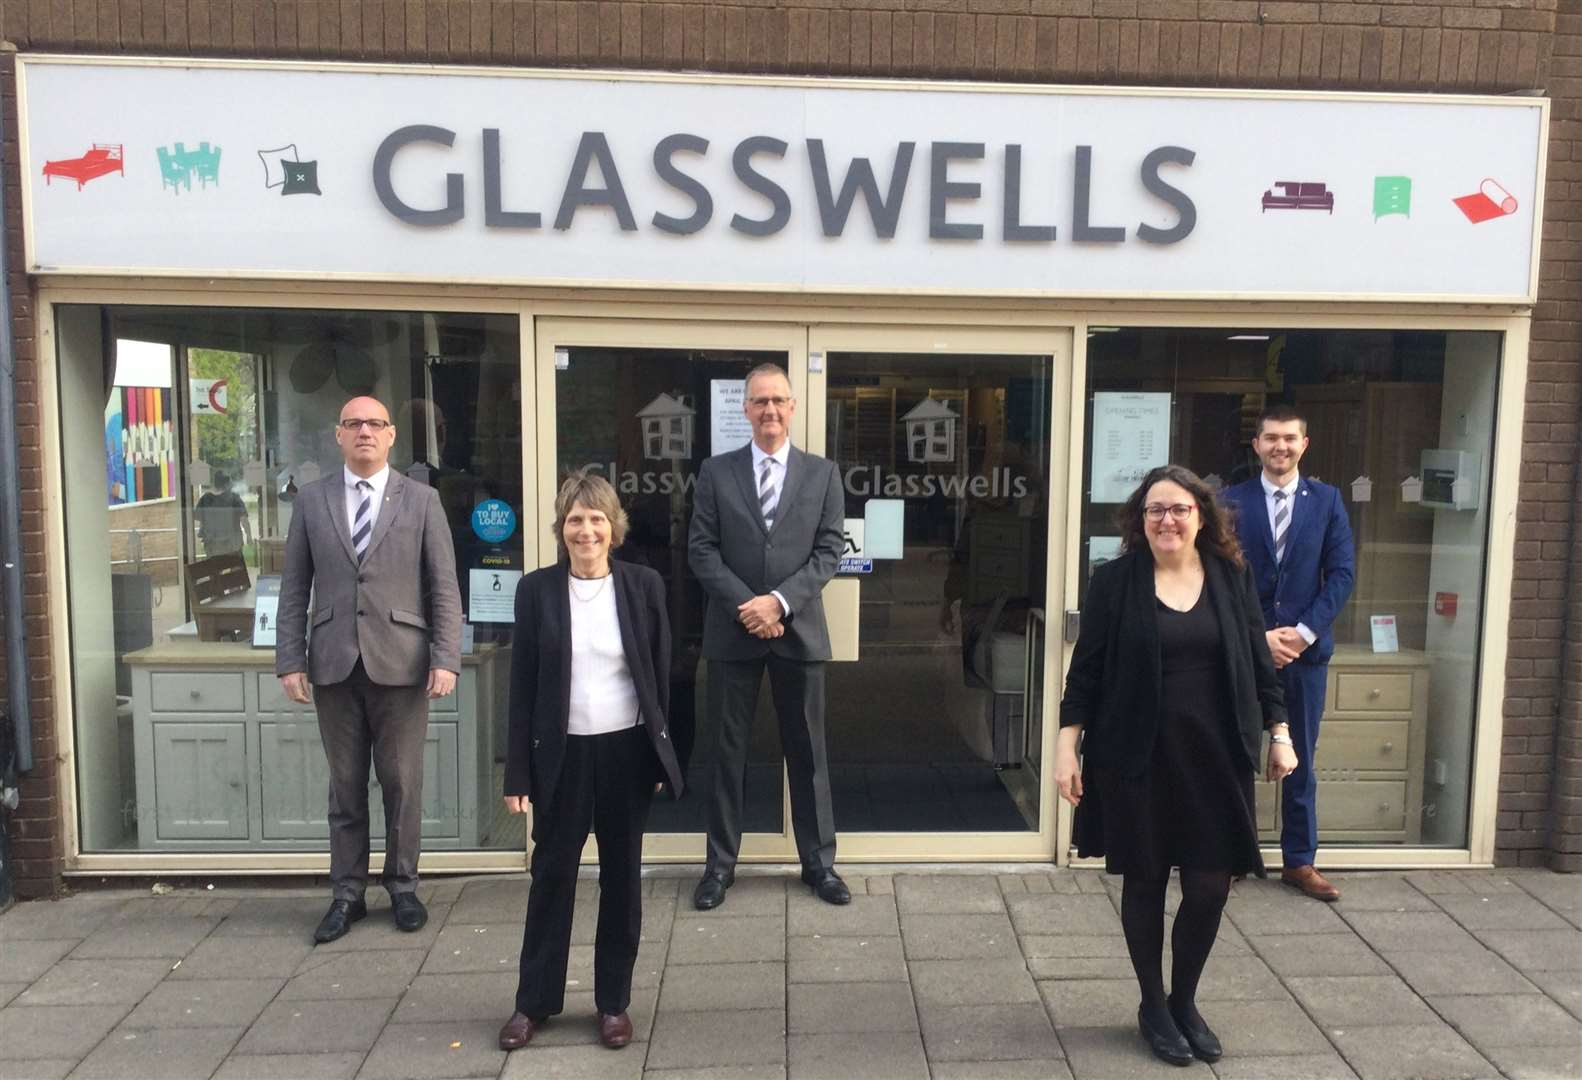 The team at Glasswells in Haverhill. Picture by Glasswells